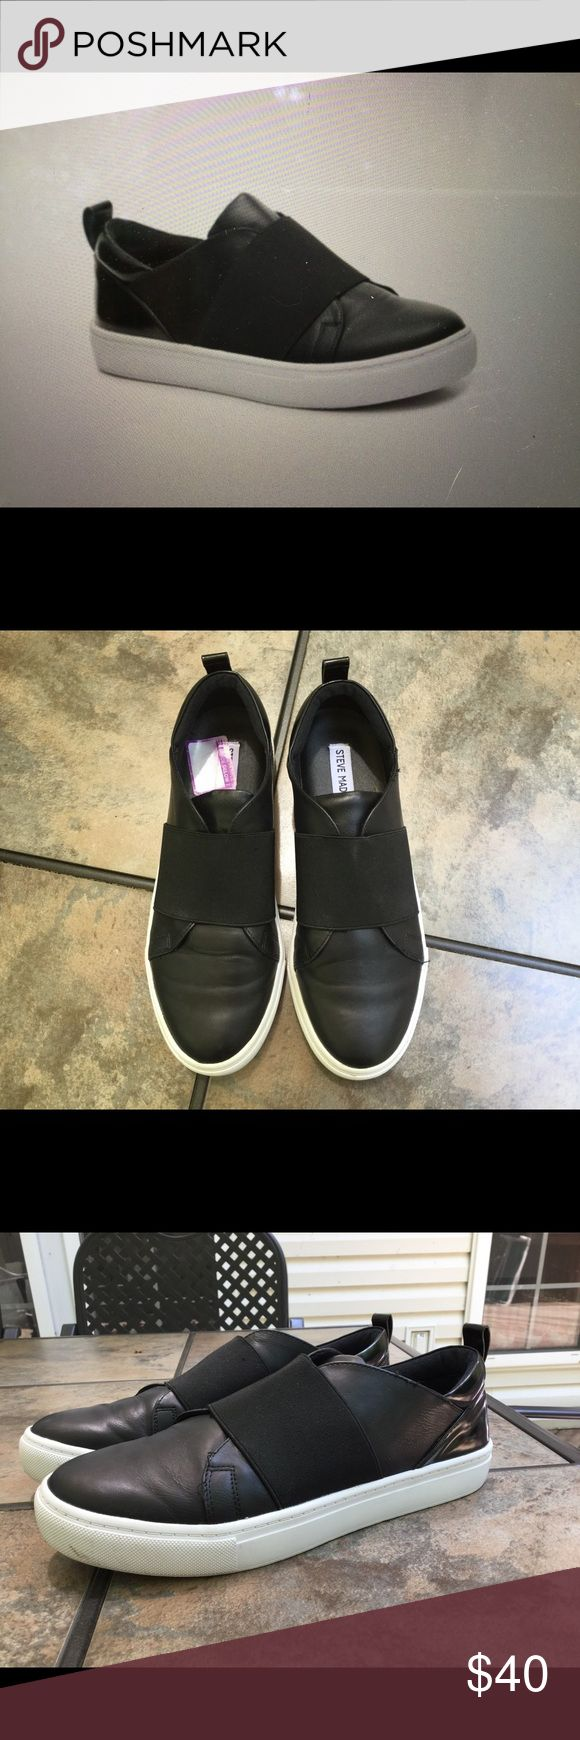 Steve Madden Enderson slip on, Size: 9 Solid weight, barely worn, athleisure trend at its best! Steve Madden Shoes Sneakers